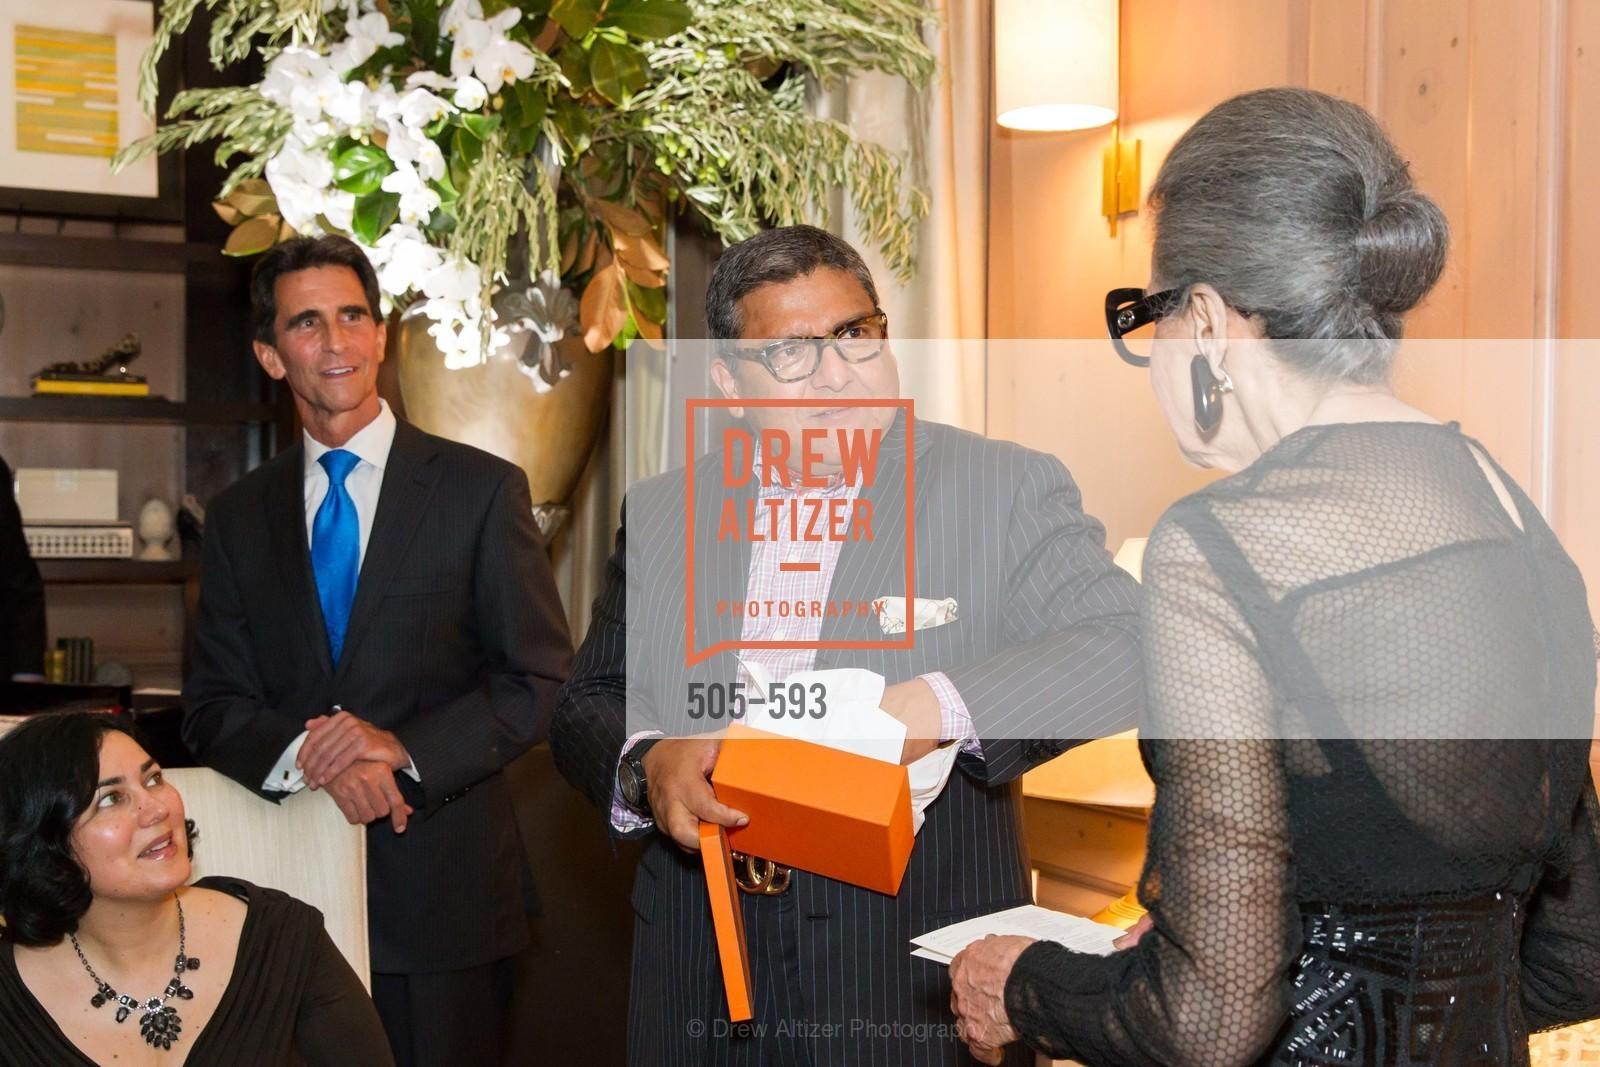 Mark Leno, Riccardo Benavides, Joy Venturini Bianchi, COUTURE FOR A CAUSE, US, October 5th, 2014,Drew Altizer, Drew Altizer Photography, full-service event agency, private events, San Francisco photographer, photographer California